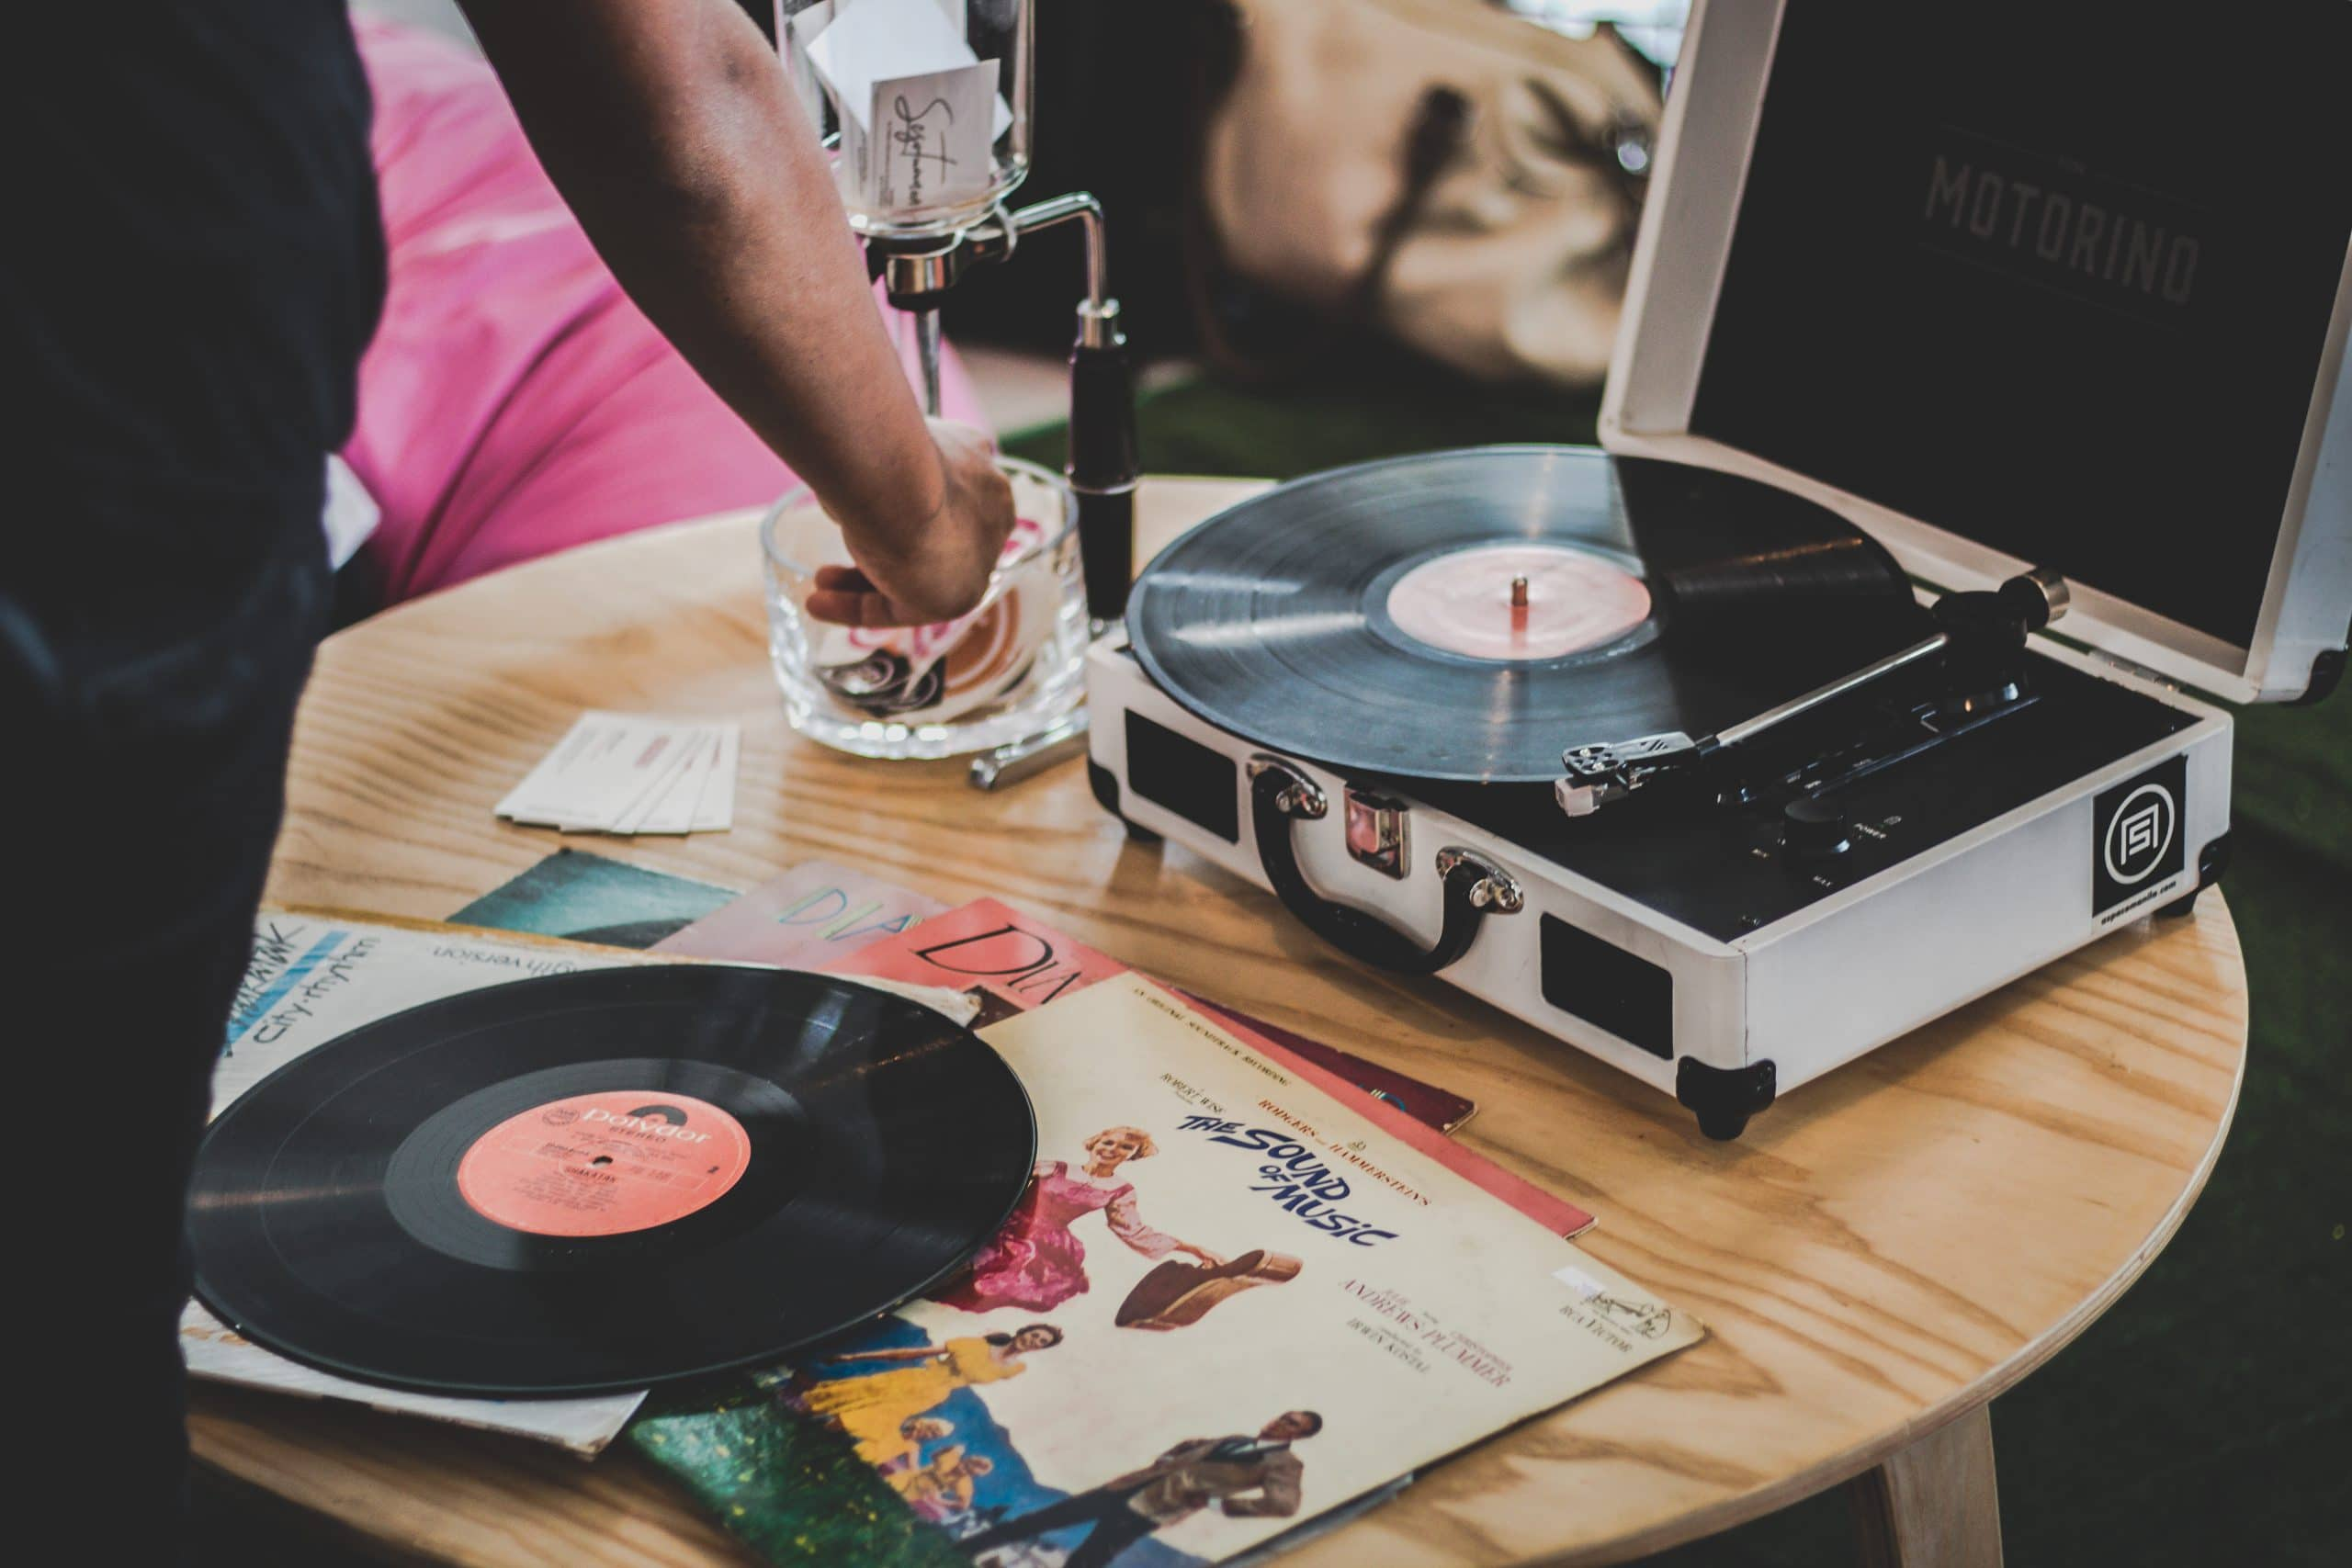 record player on table